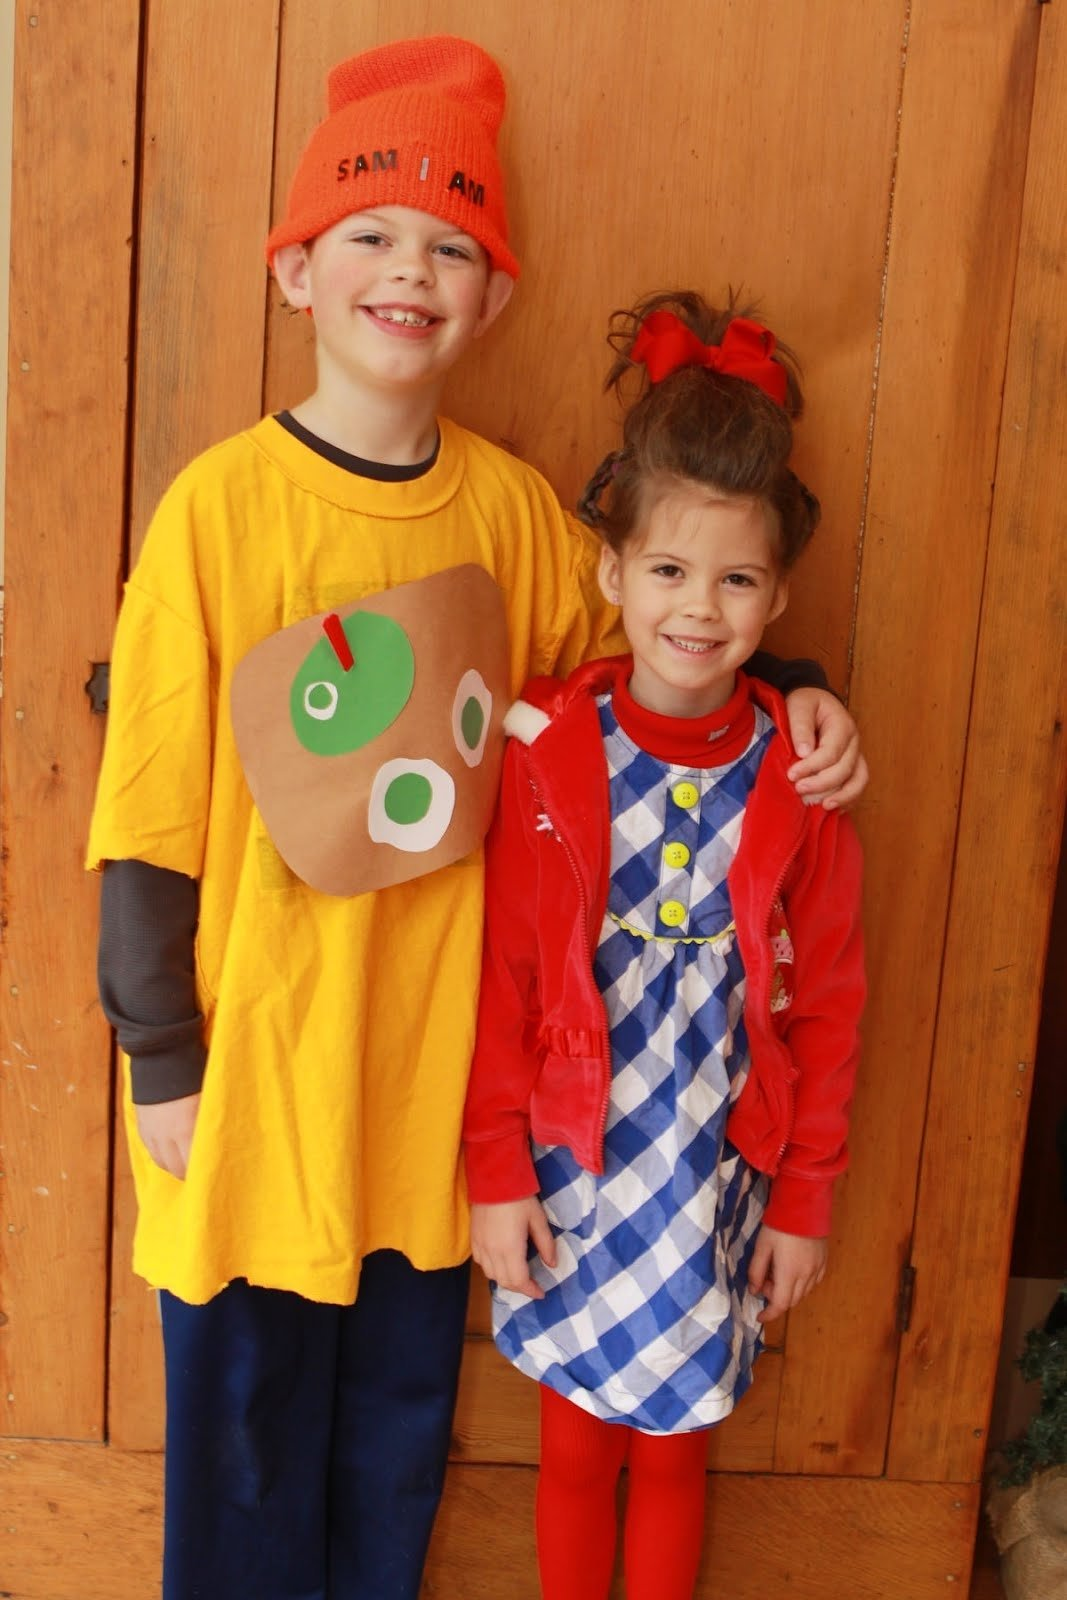 10 Best Dr Seuss Characters Costumes Ideas fun times in our lives cindy lou and sam i am dr seuss